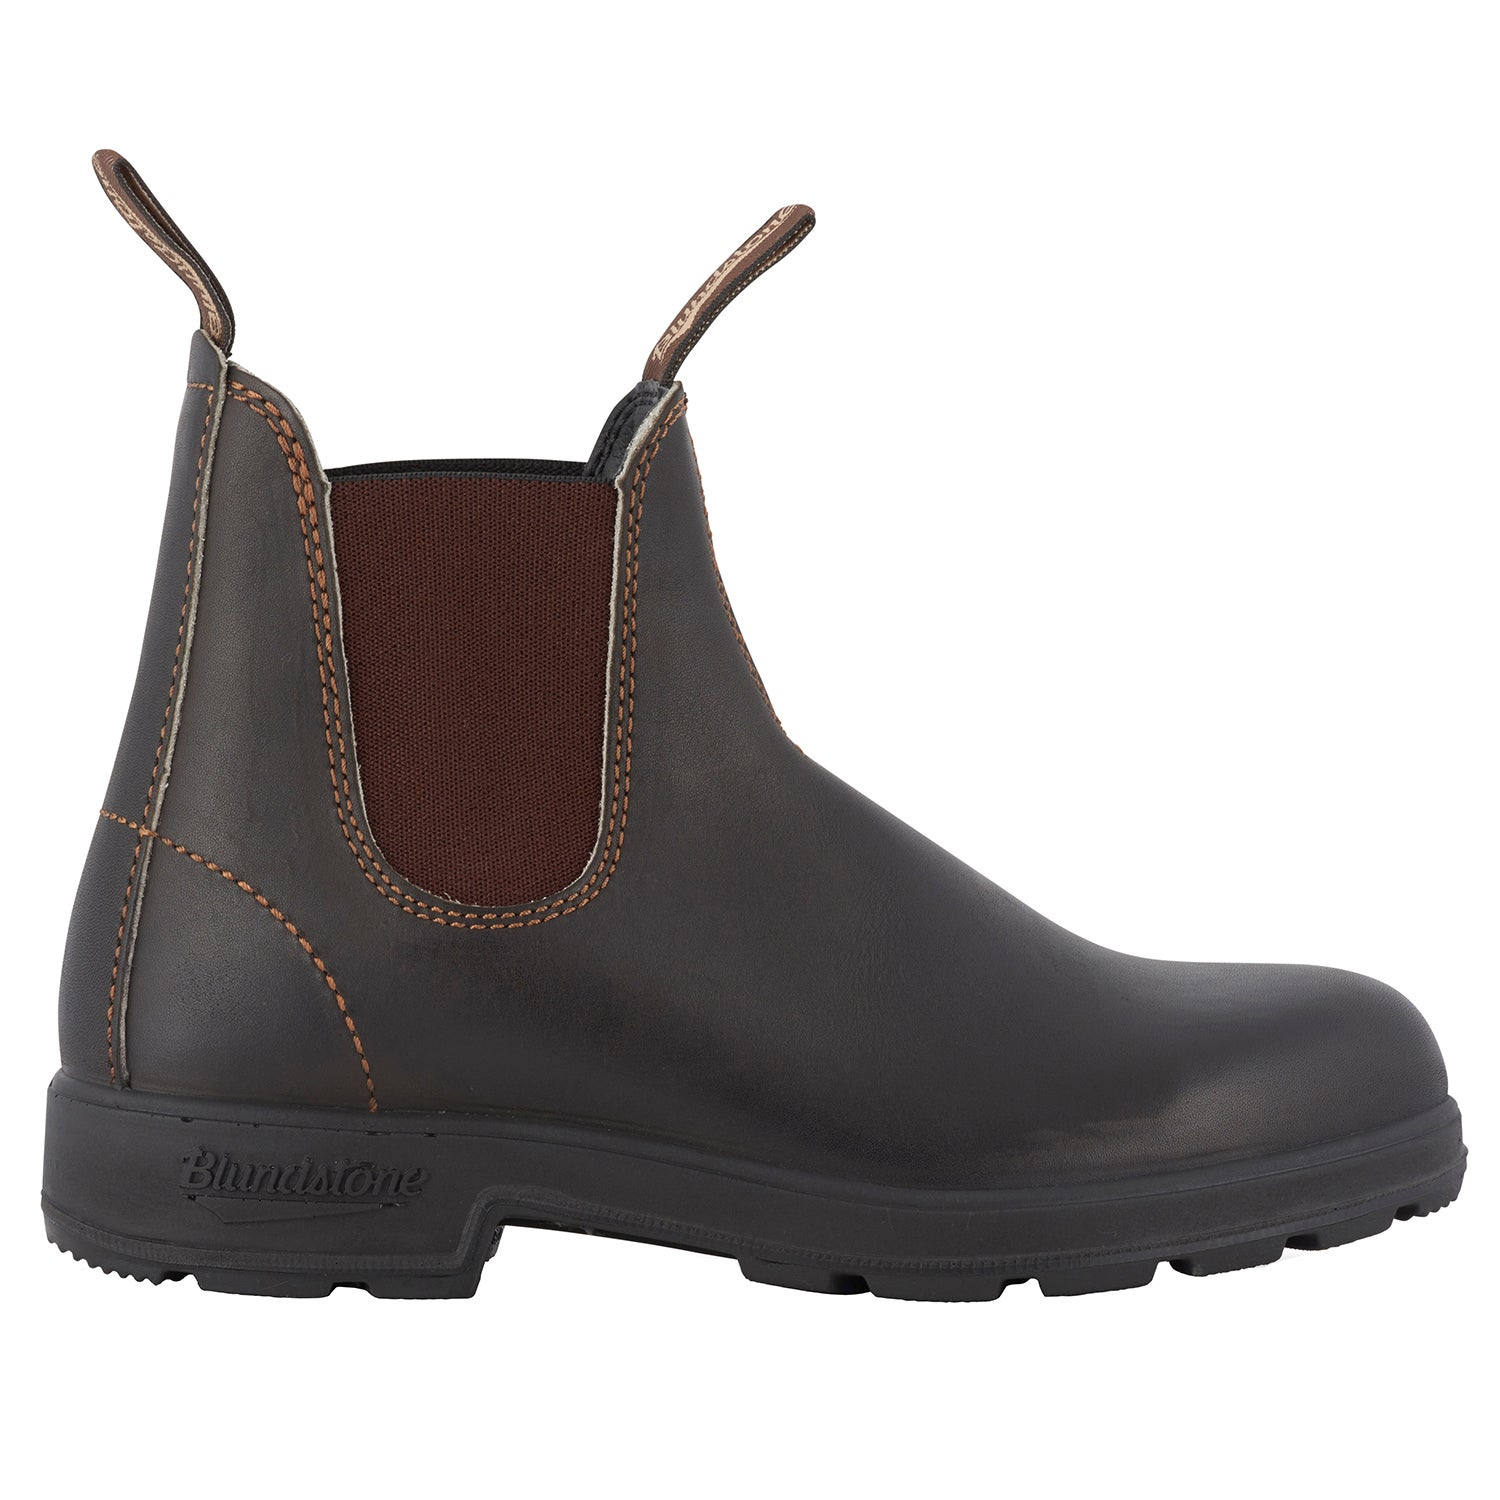 Boots available from Blackleaf